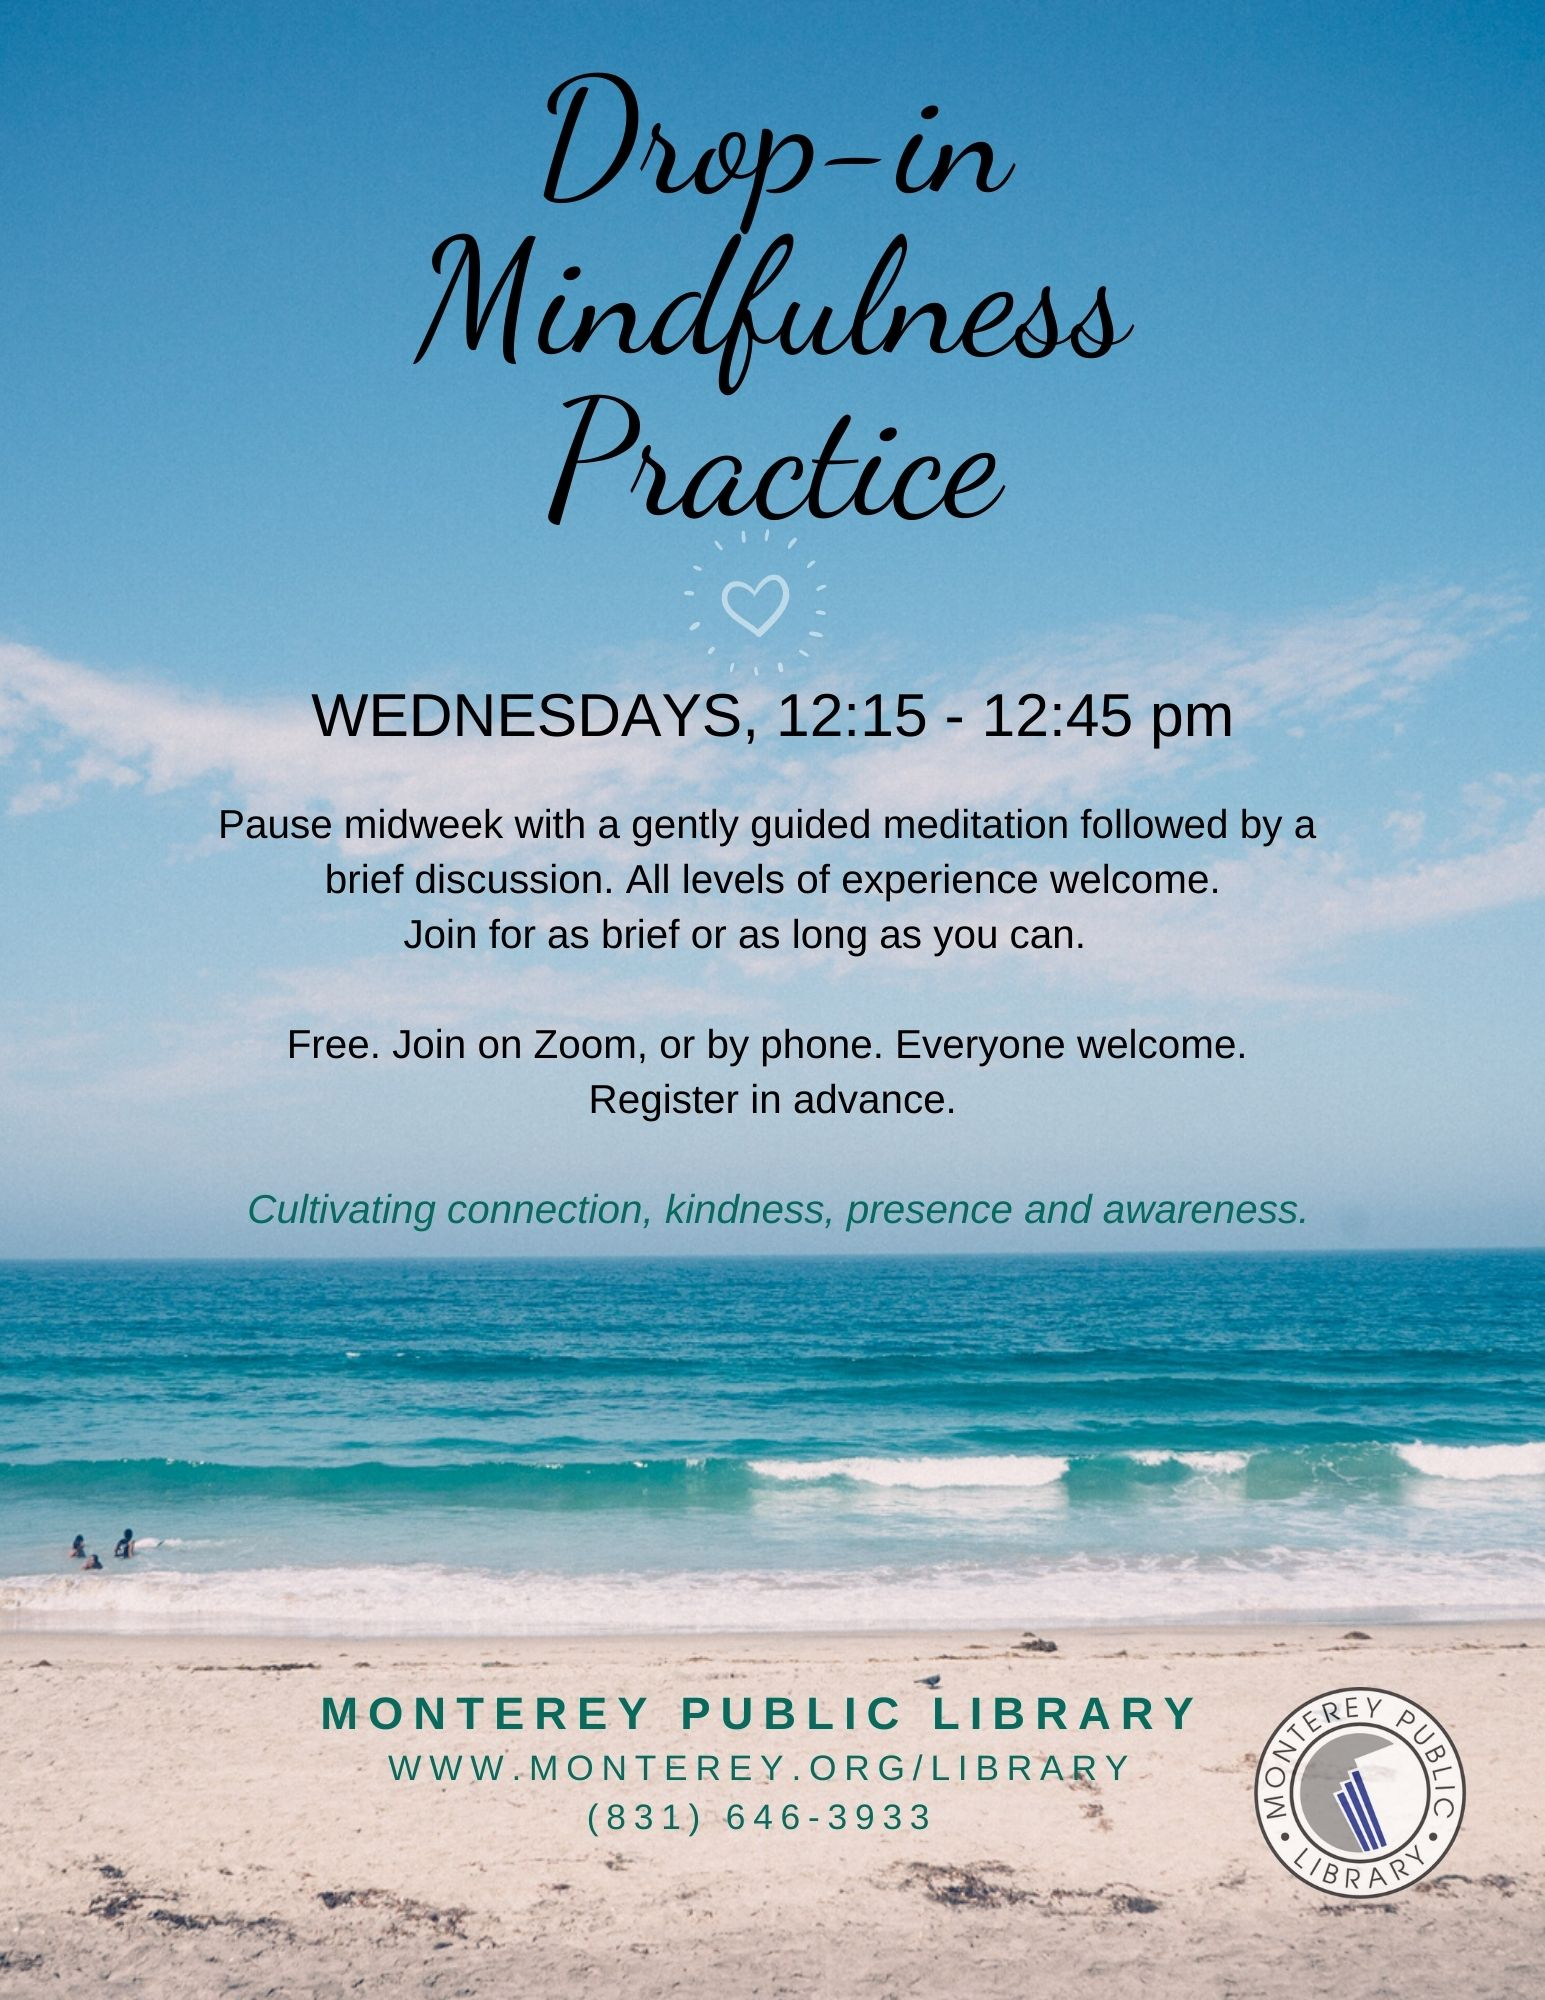 Drop-in Mindfulness Practice